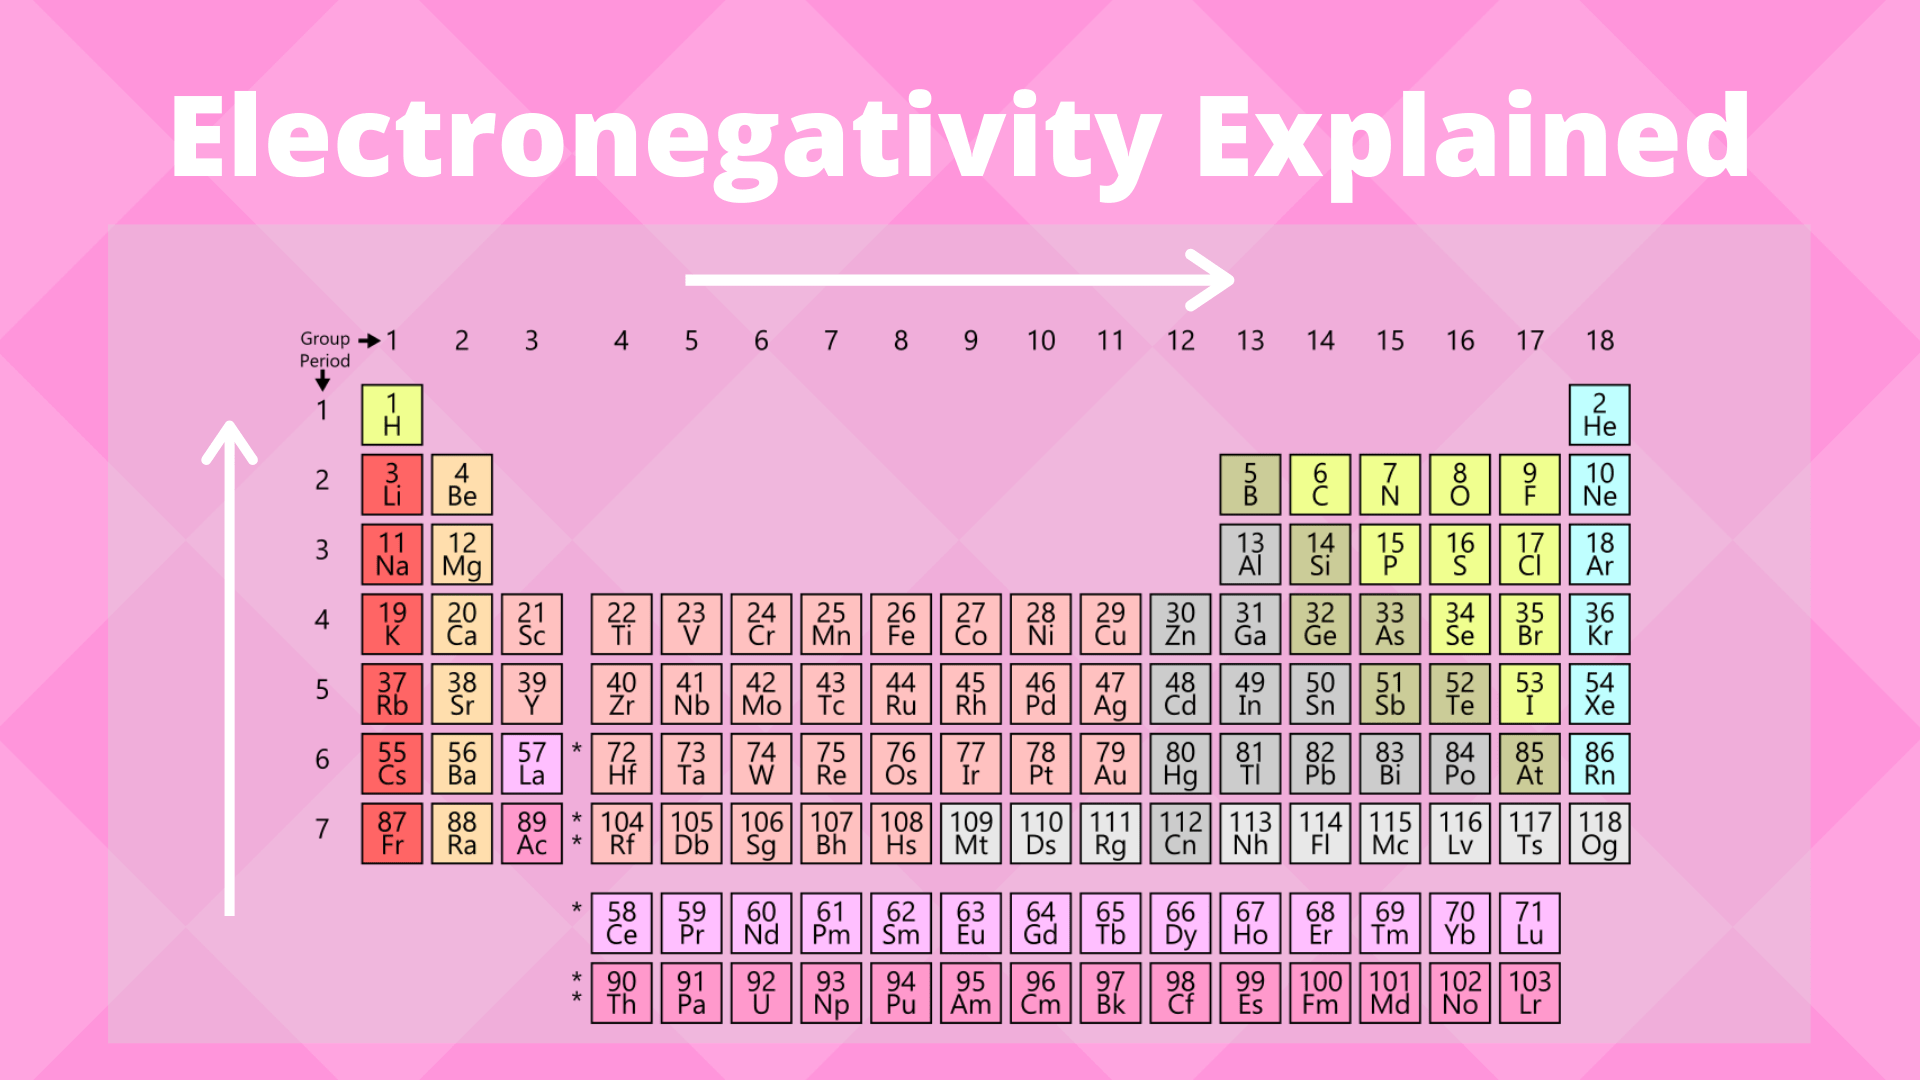 What Do The Periods On Periodic Table Correspond To